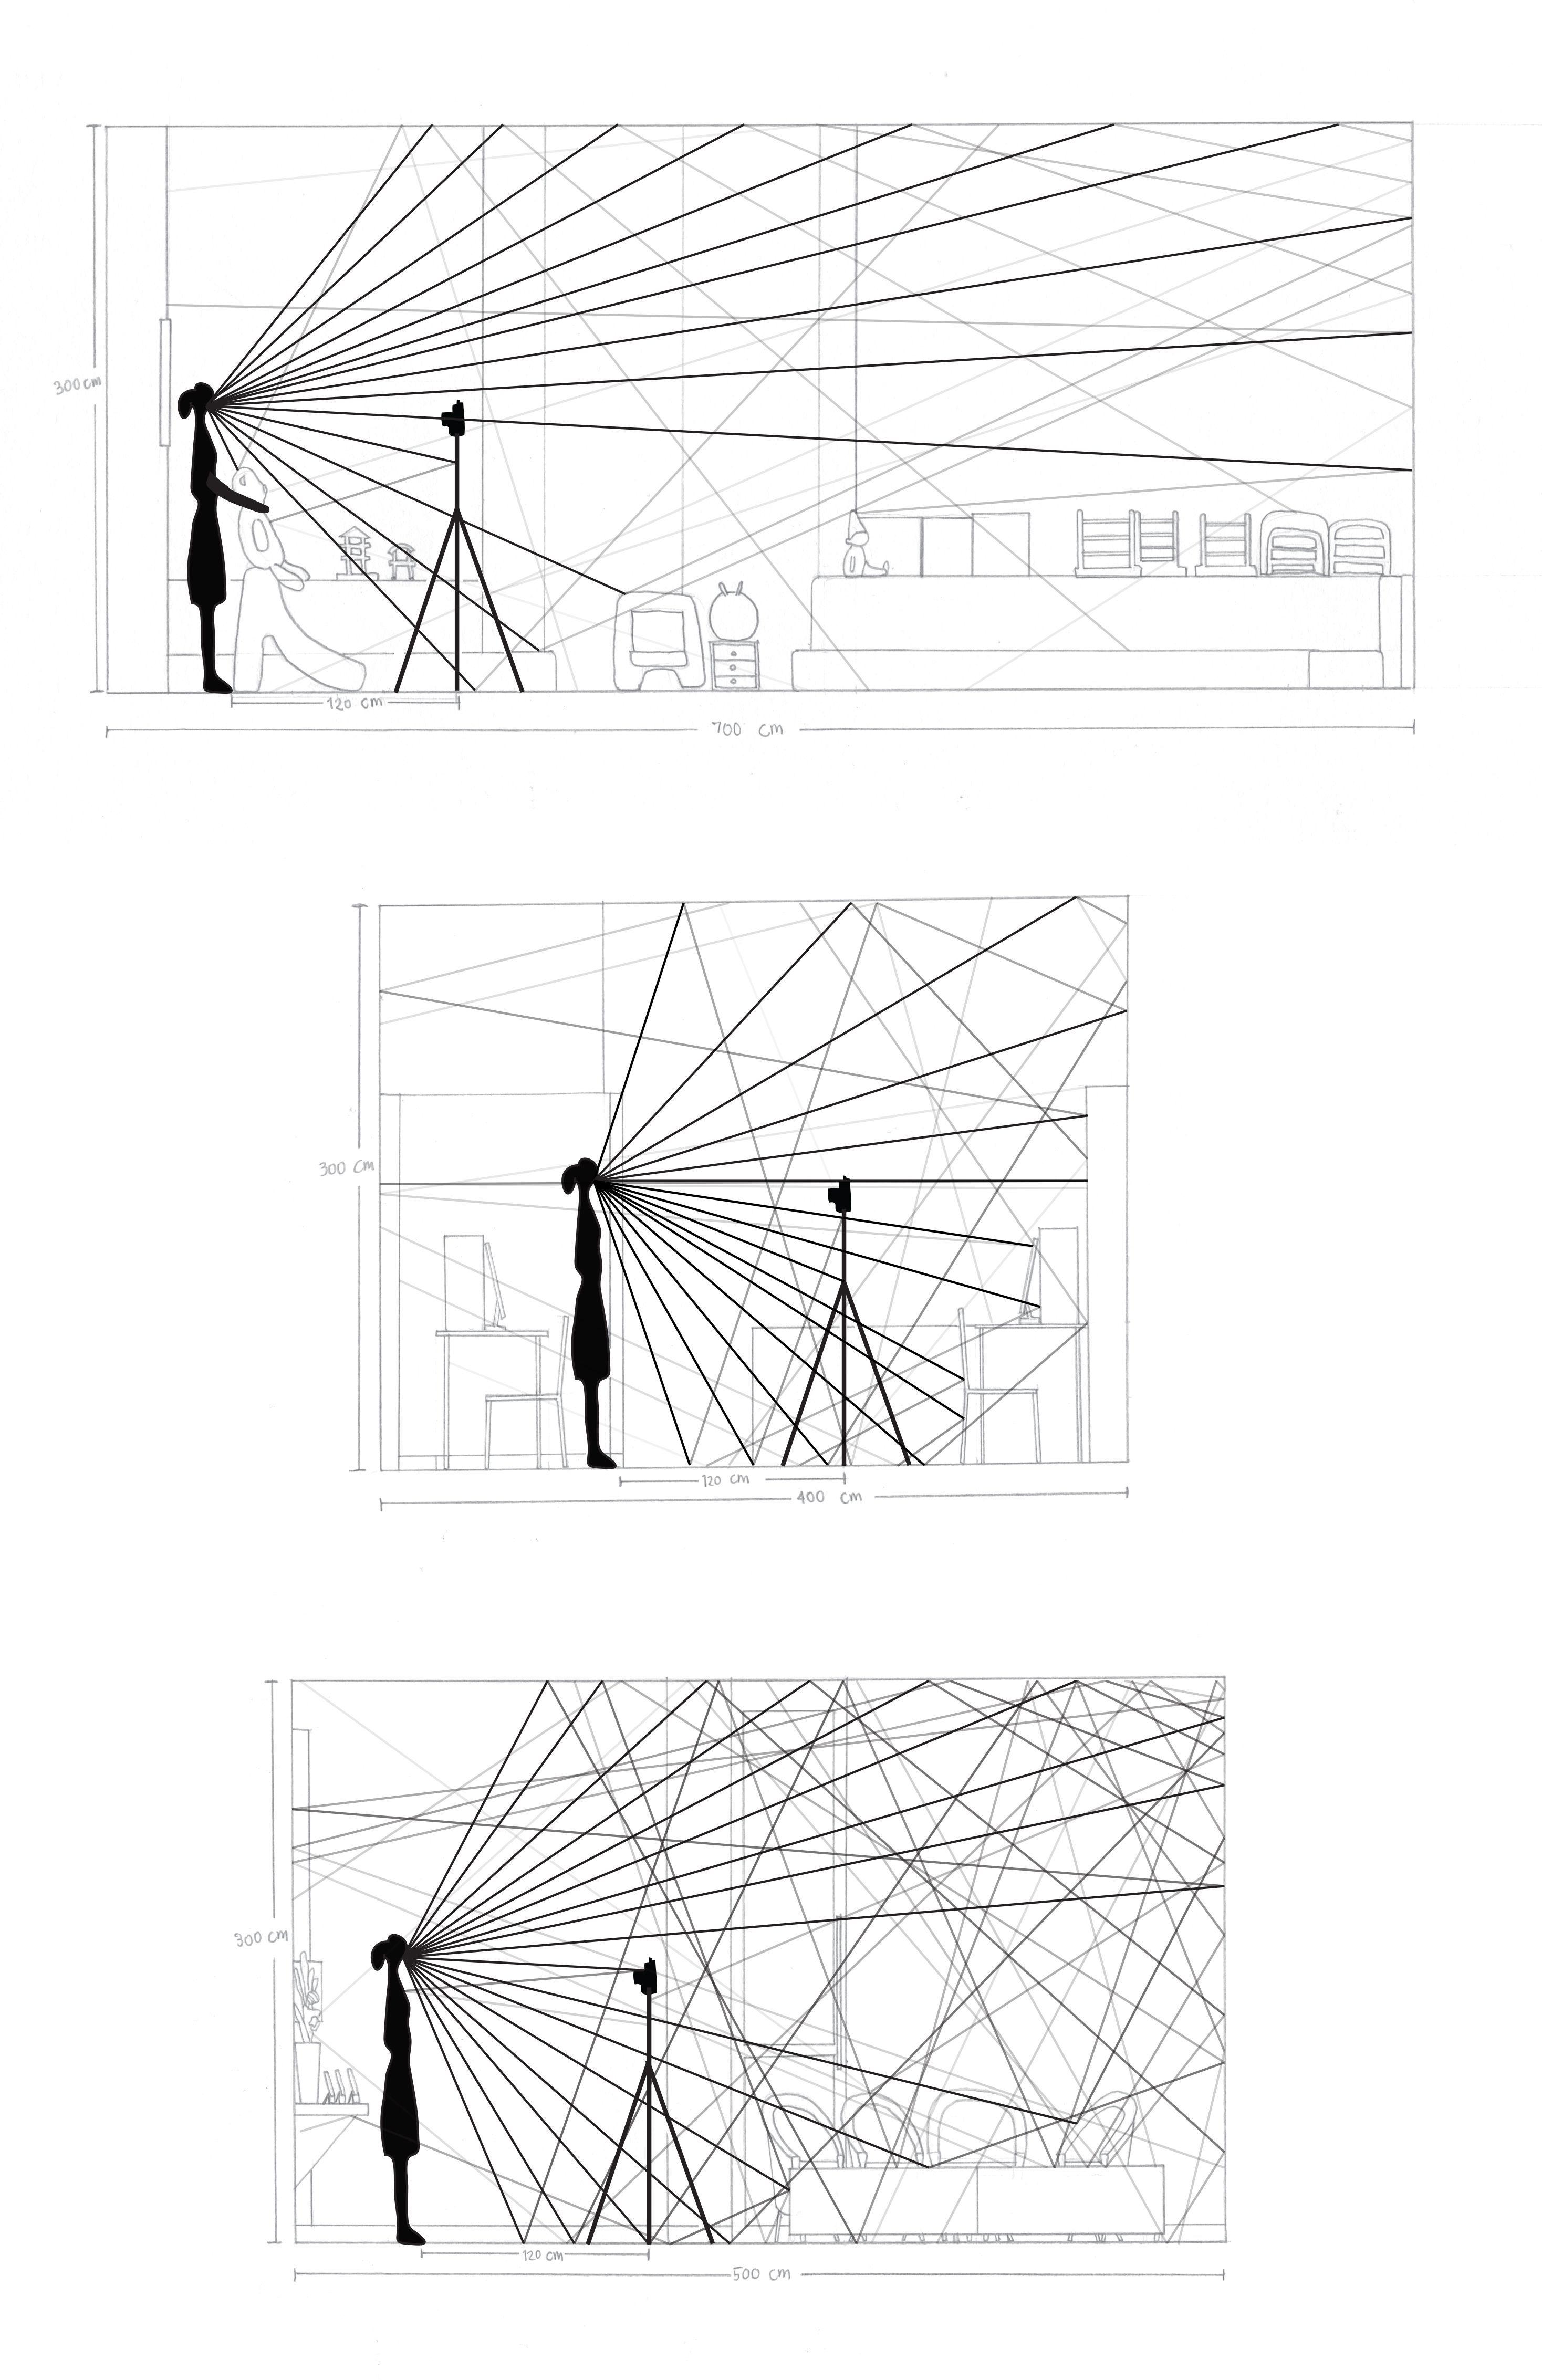 Acoustics Of 3 Spaces These Drawings Show The Acoustic Of 3 Different Spaces A